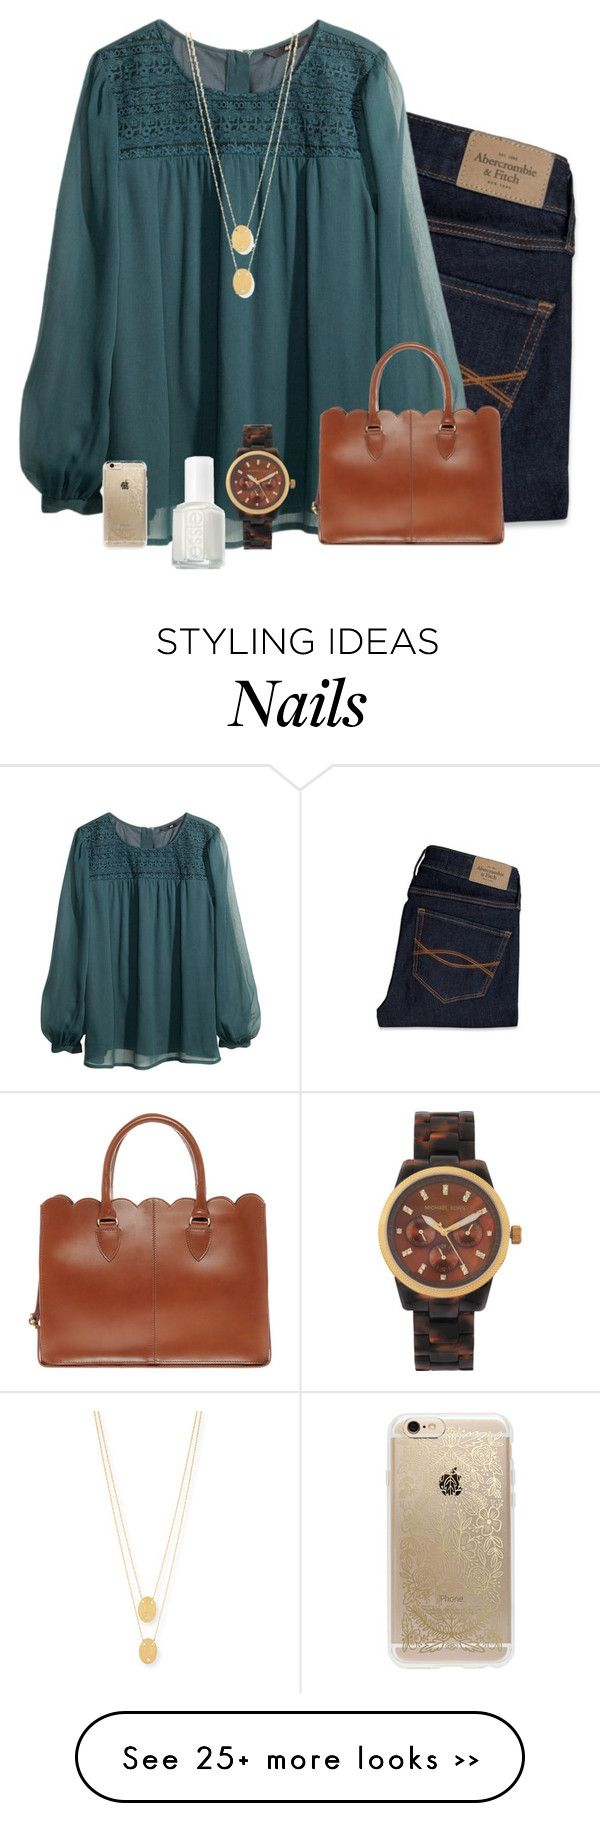 """""""thinking about the fun we had since 2k03 and now what's happening? tearing and drifting apart ✨"""" by kadynpleasnts on Polyvore featuring moda, Abercrombie & Fitch, H&M, ASOS, Michael Kors, Jennifer Zeuner, Essie ve Rifle Paper Co"""